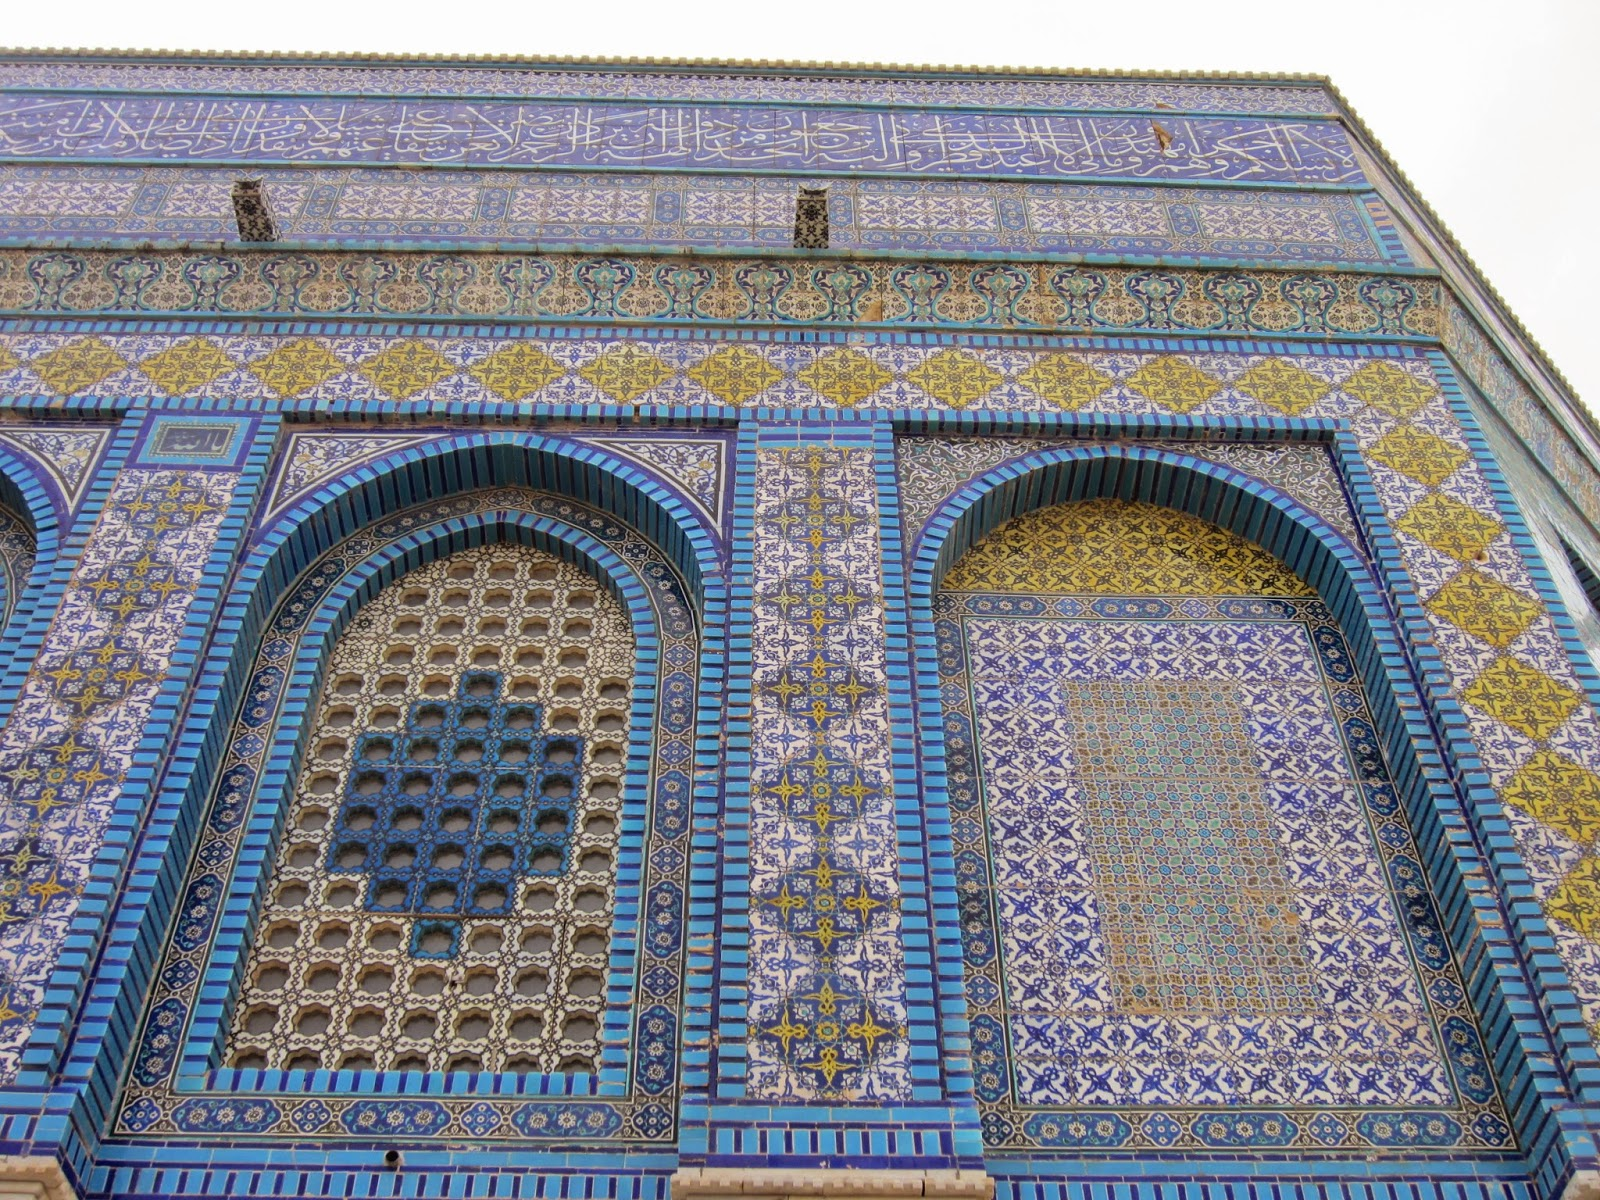 Mosaics 2, Dome of the Rock, Jerusalem